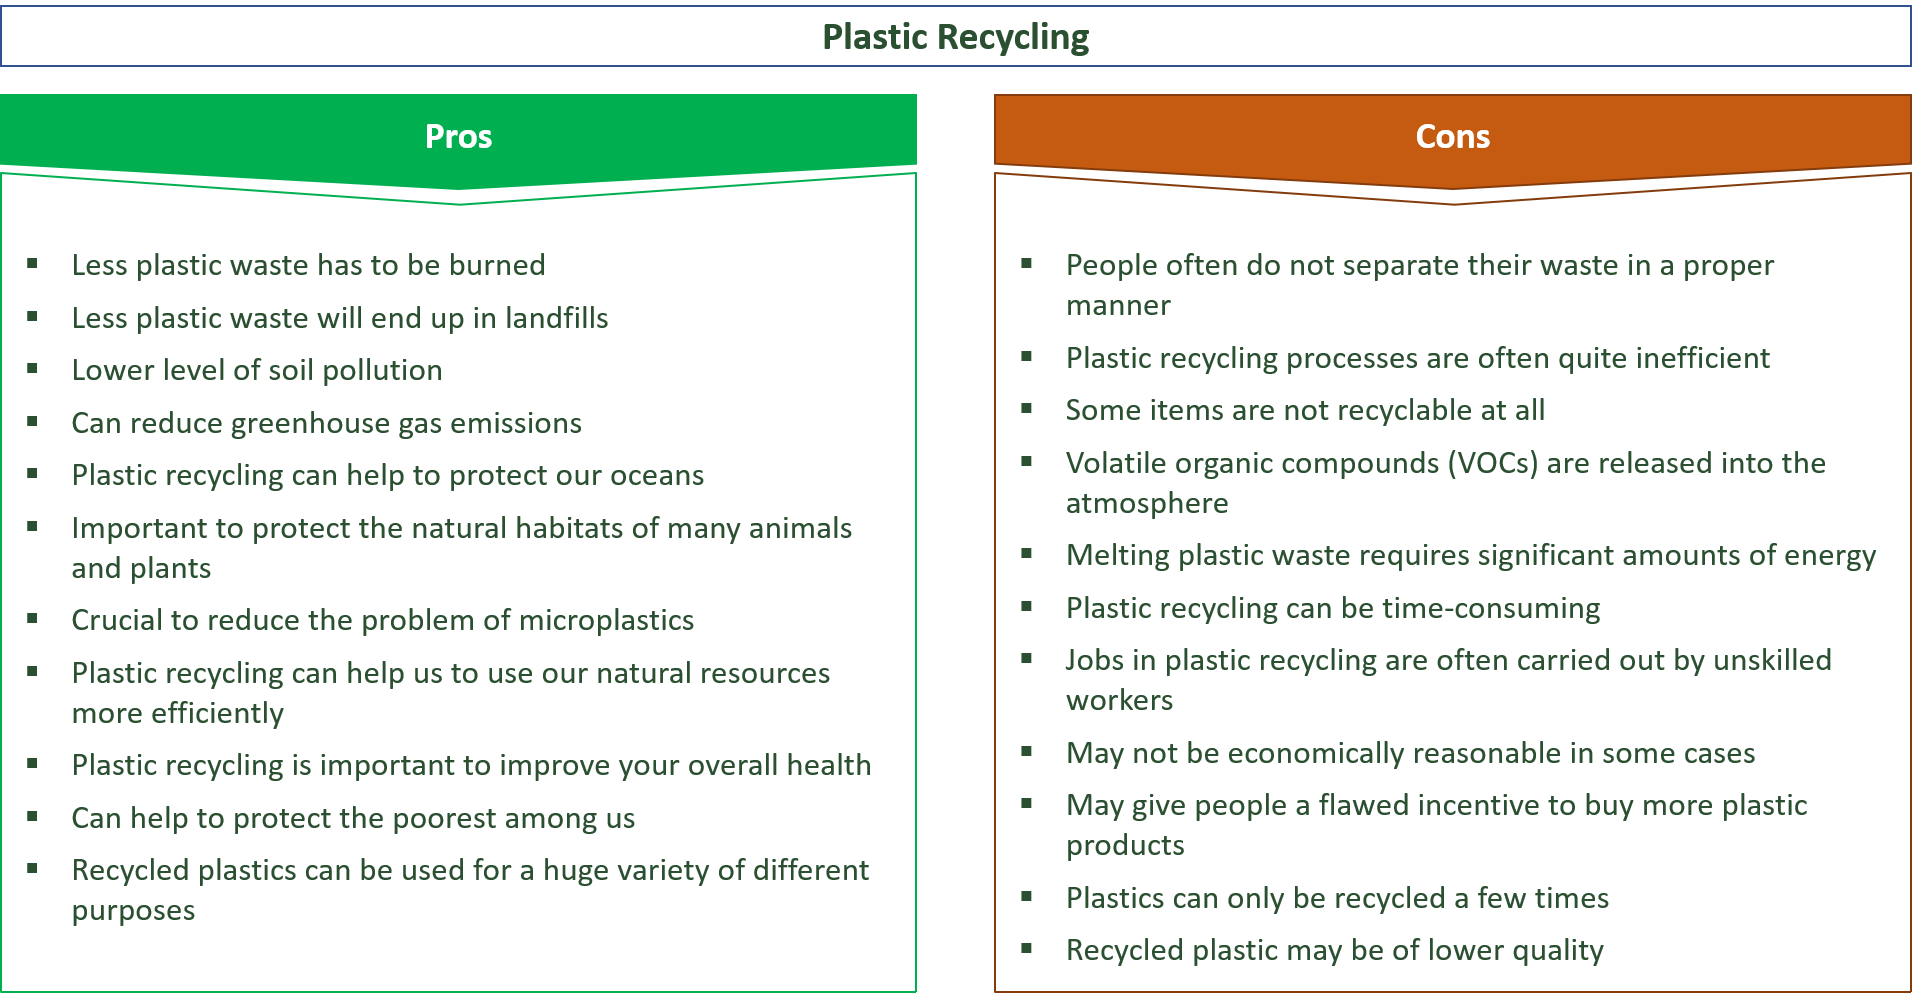 advantages and disadvantages of plastic recycling